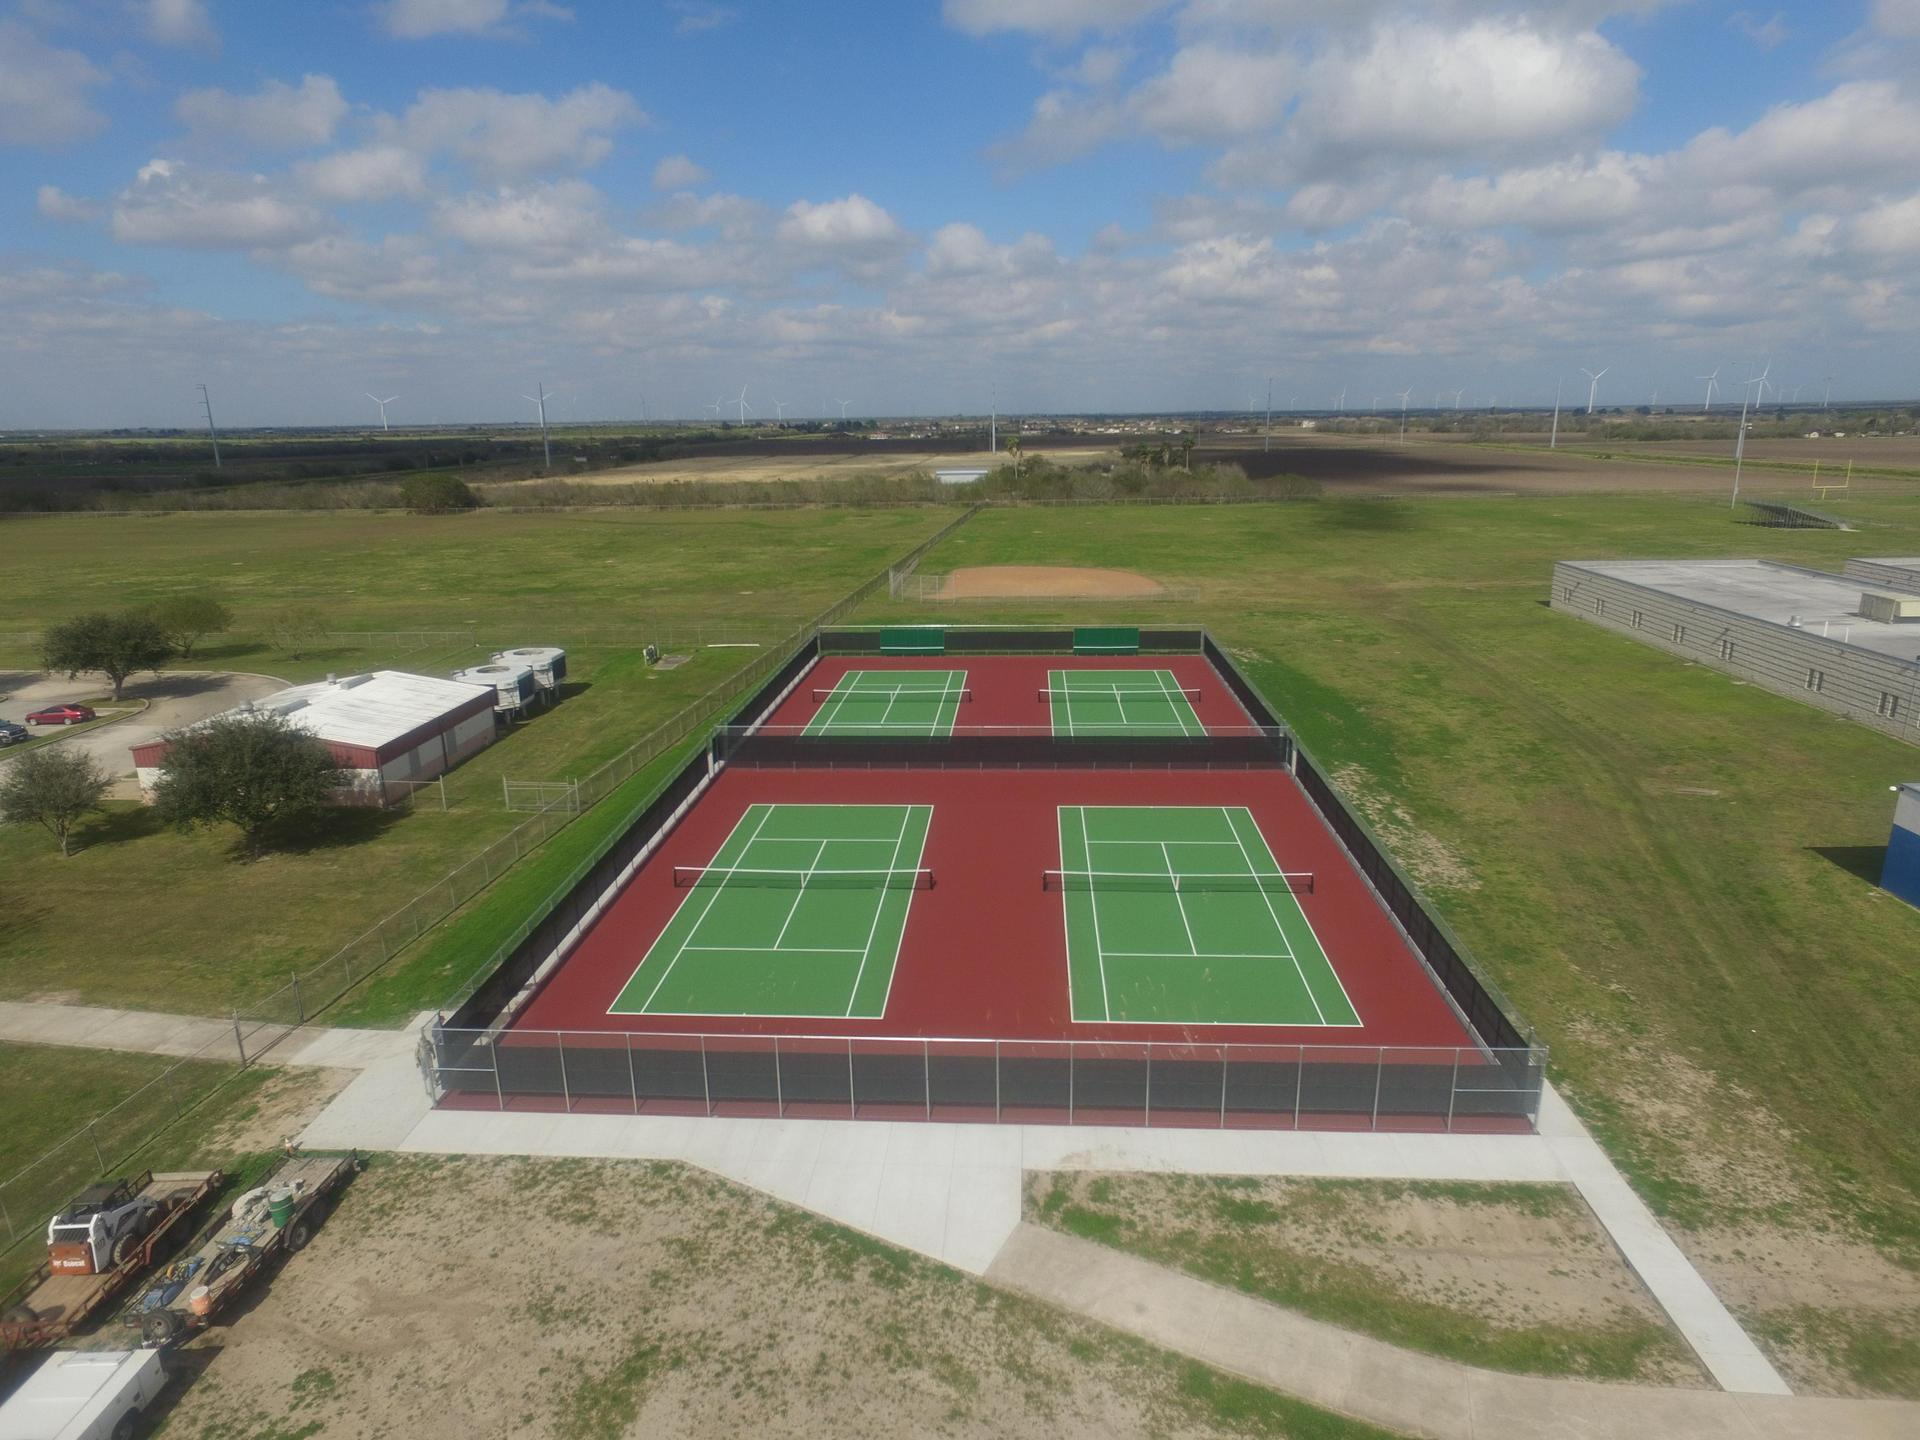 LMMS tennis courts